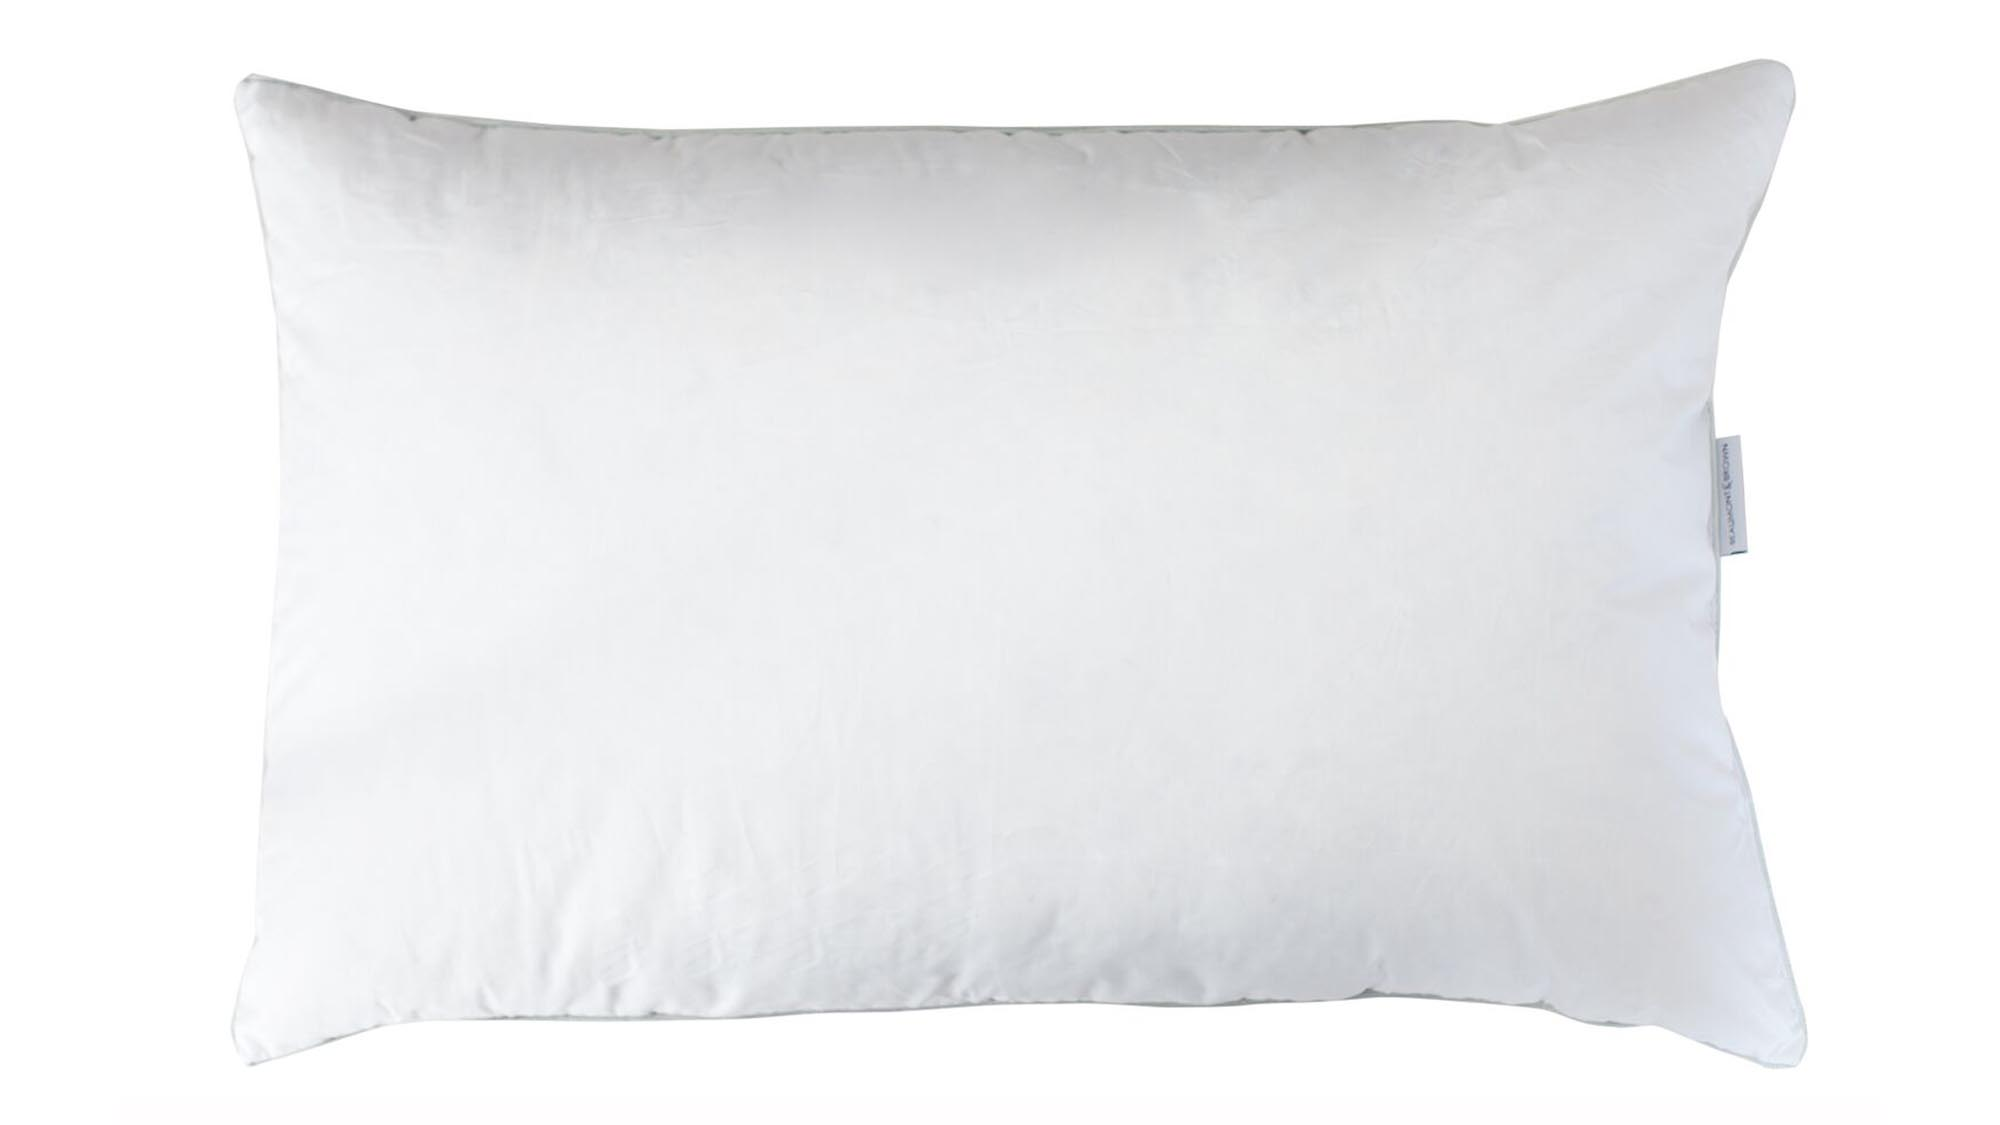 pillow for top best pillows guide money ultimate the in